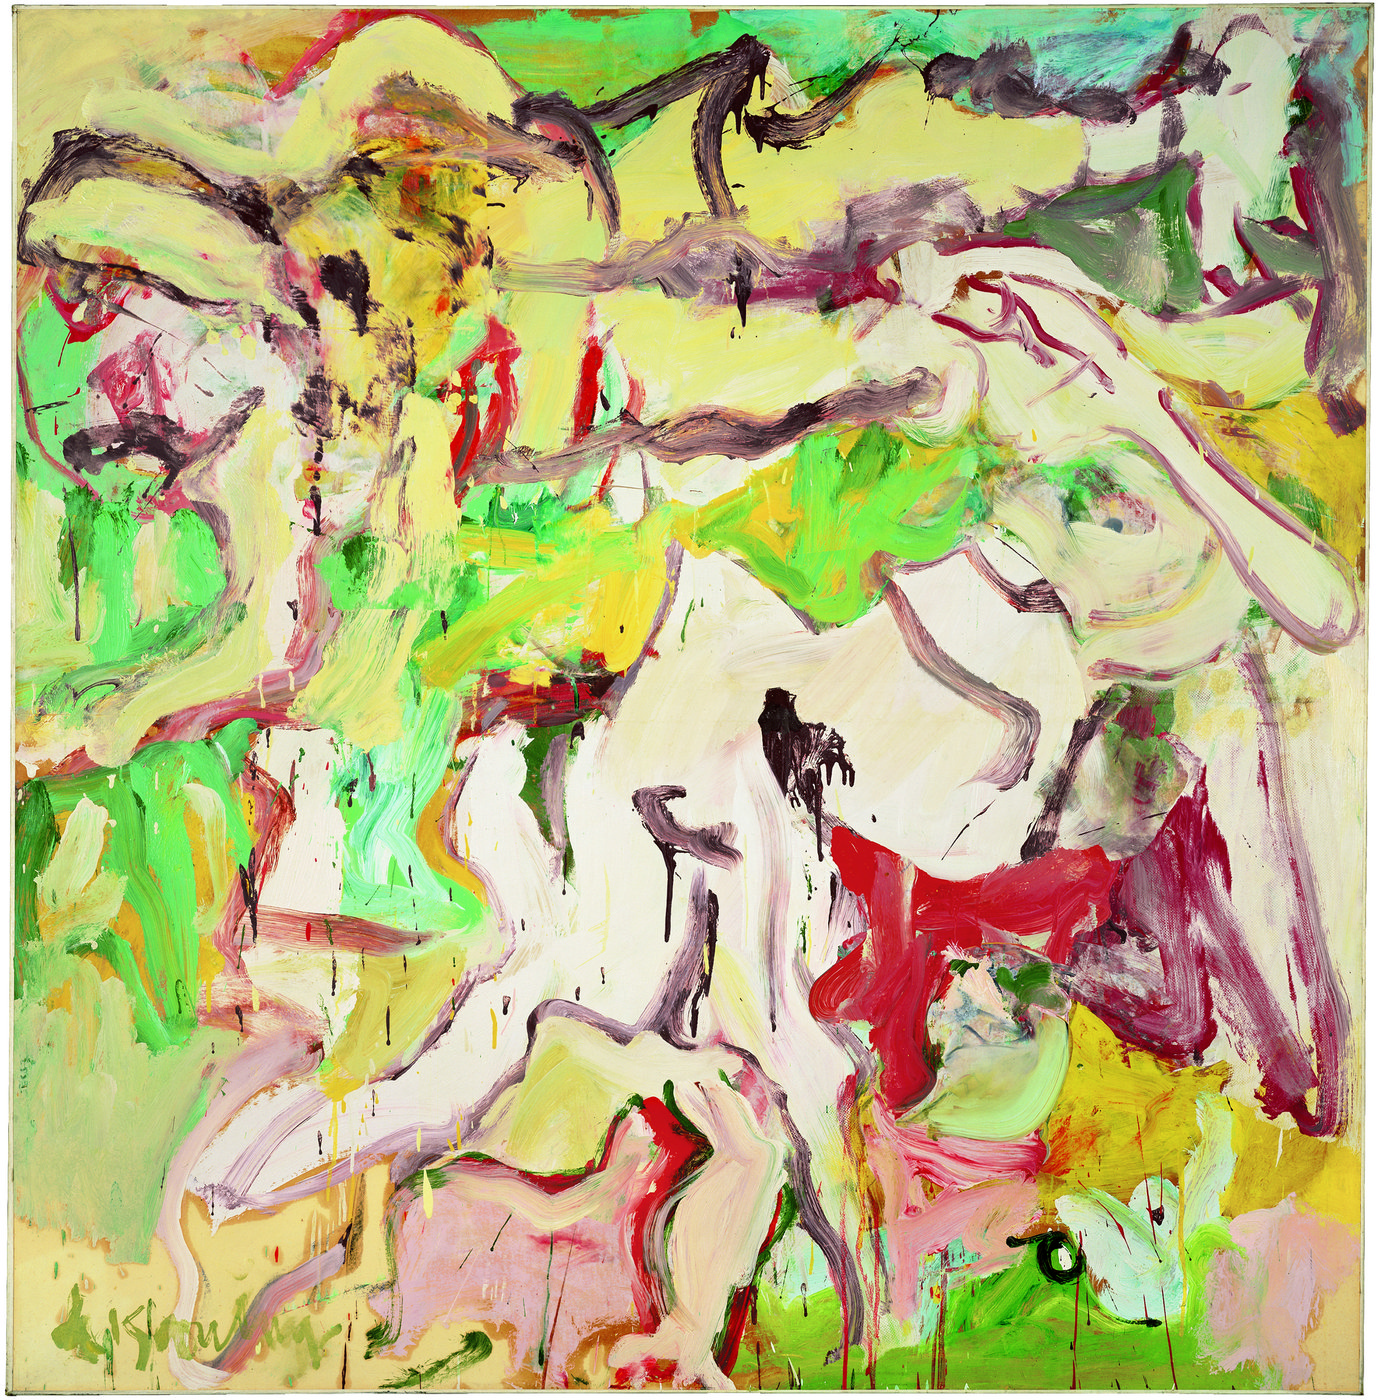 ", 1969. Oil on paper on canvas, 72-1/2"" x 70-1/4"" (184.2 cm x 178.4 cm)."